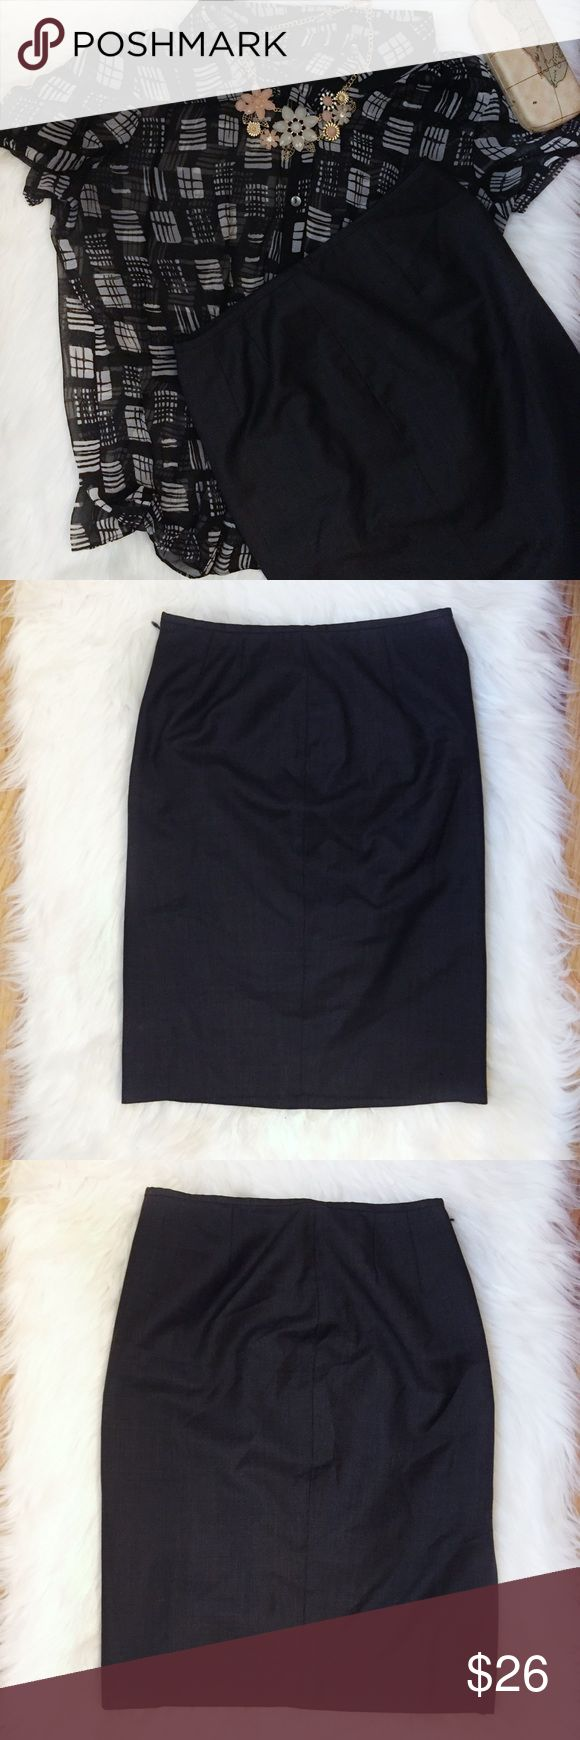 Calvin Klein charcoal gray pencil skirt size 12 Preowned classic skirt from Calvin Klein Back zipper back slit fully lined Straight/pencil style Career type suit skirt Very versatile and classic piece to have in your wardrobe  Color: charcoal gray Gently used condition with no stains or holes Size: 2 Please see pictures for fabric content and approximately measurements while flat, unstretched.  Feel free to make an offer or bundle & save!  (B33) Calvin Klein Skirts Pencil